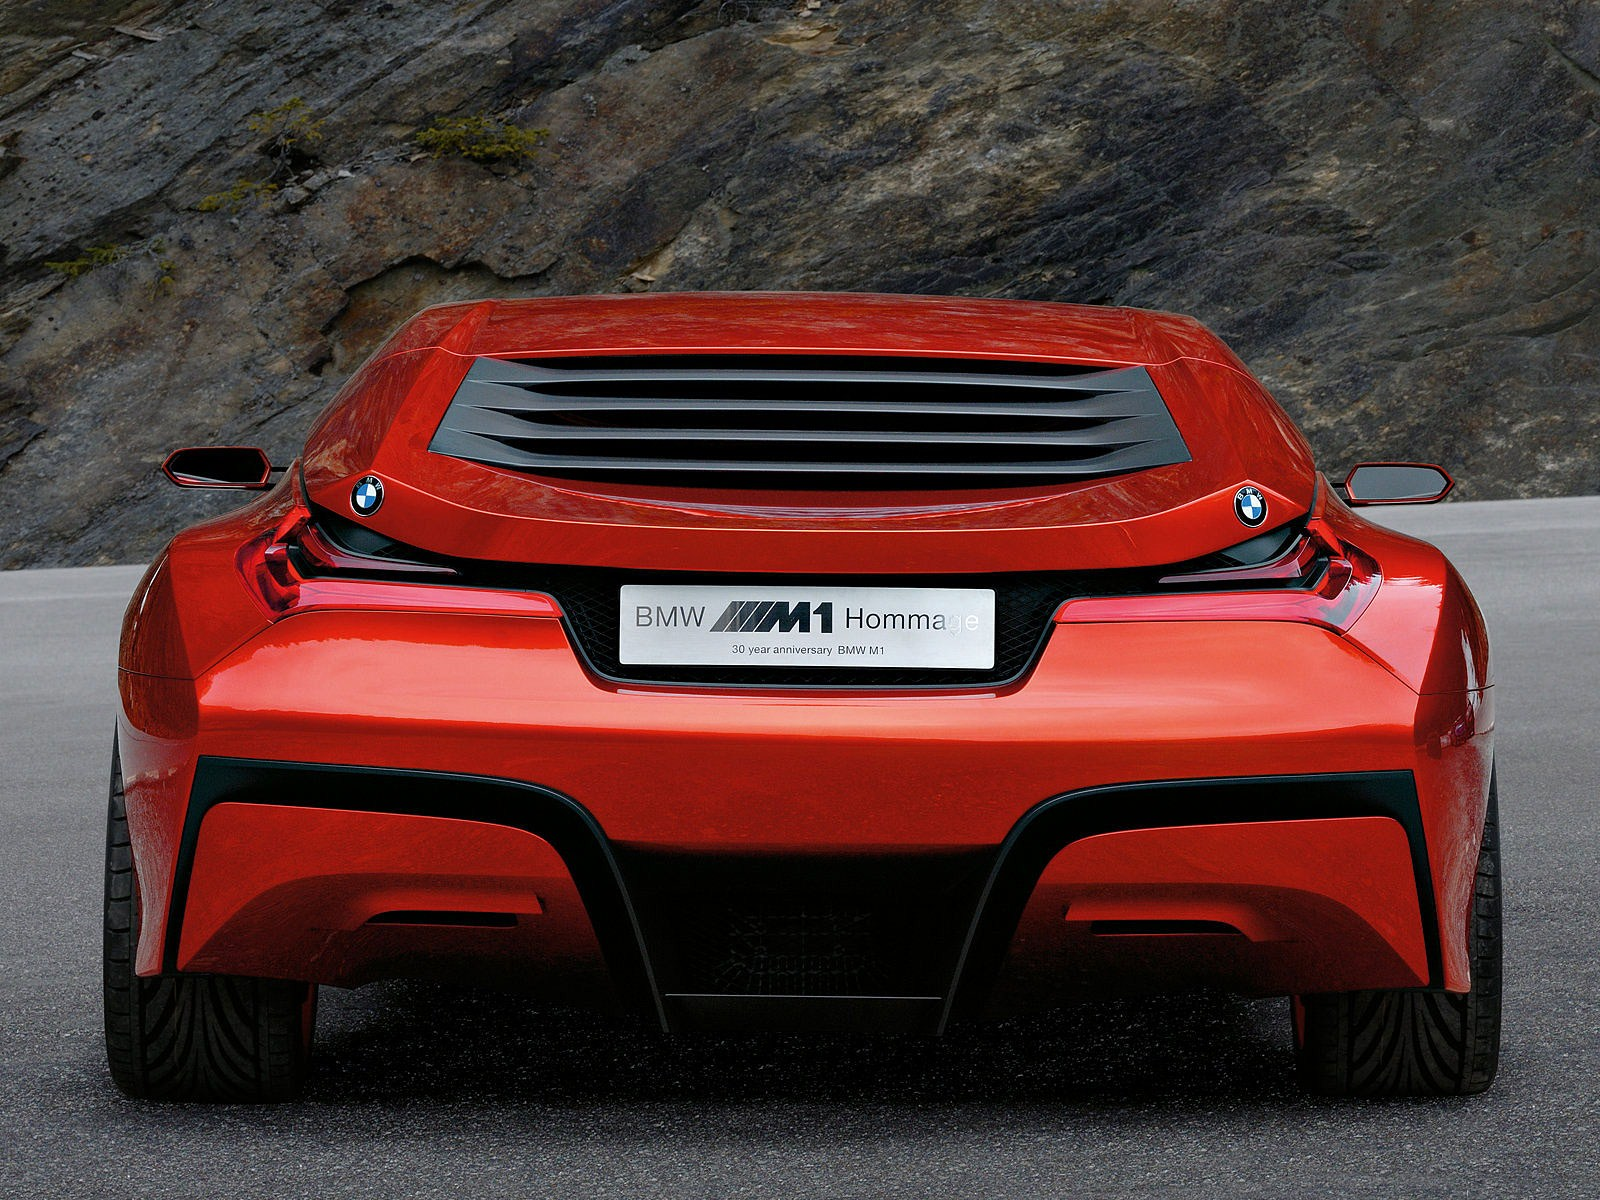 Our Wallpaper Cars Blog Provide 2016 BMW M1 Wallpapers Car With Cool Hd Photos Woith Various Resolutions 2 Pictures